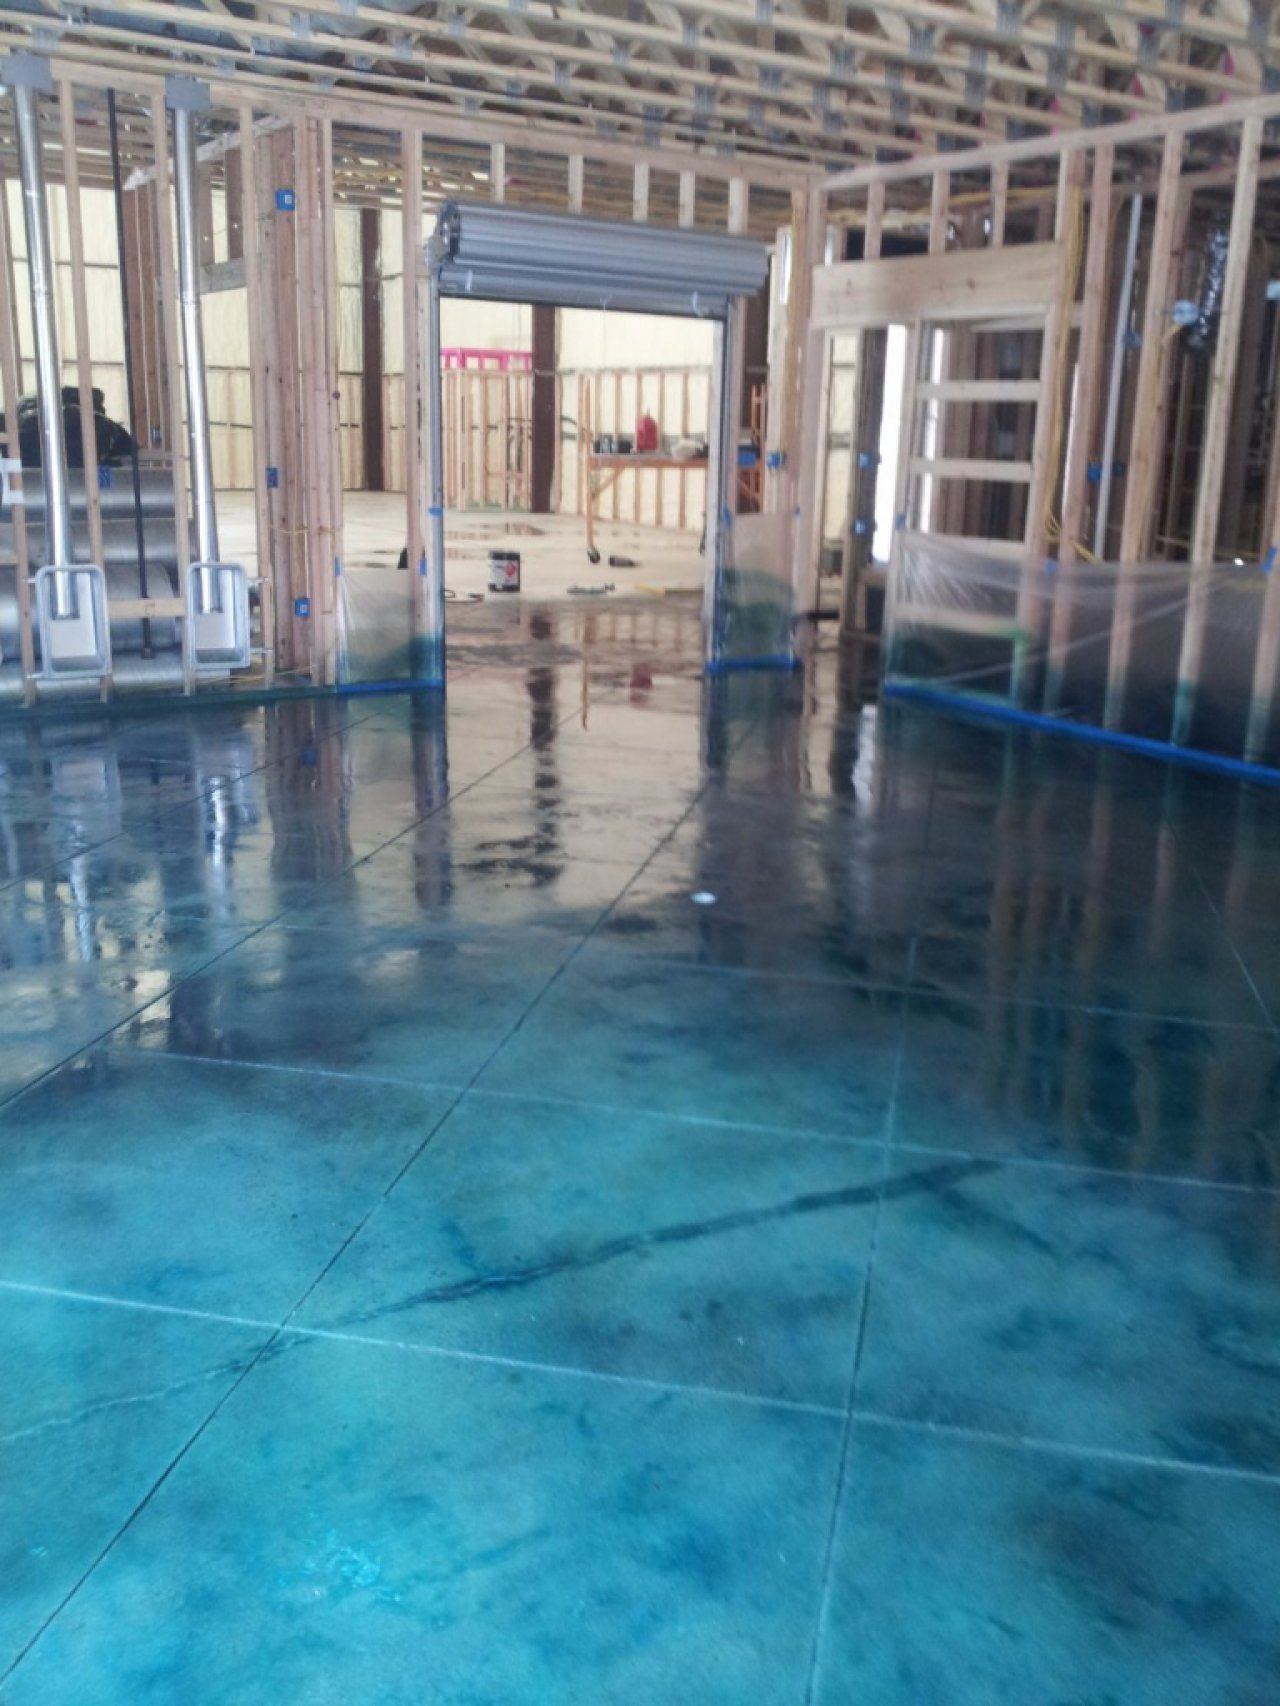 Turquoise Stained Concrete Floor In Warehouse Magnolia Texas